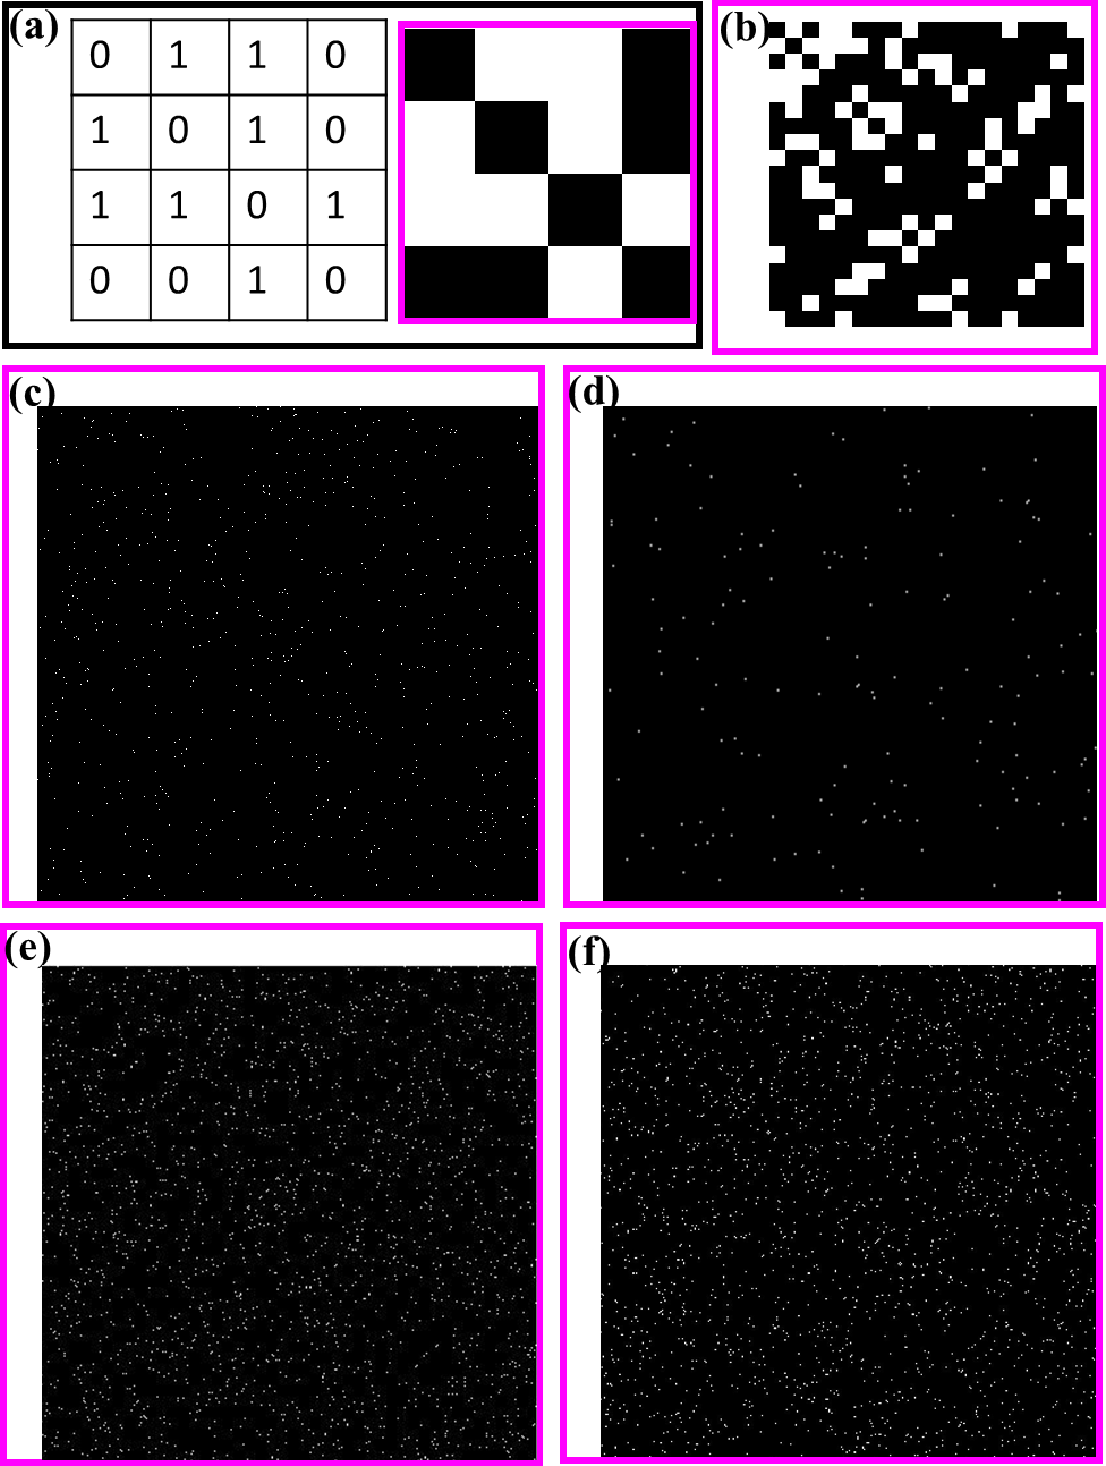 Figure 3 for Visual Machine Learning: Insight through Eigenvectors, Chladni patterns and community detection in 2D particulate structures